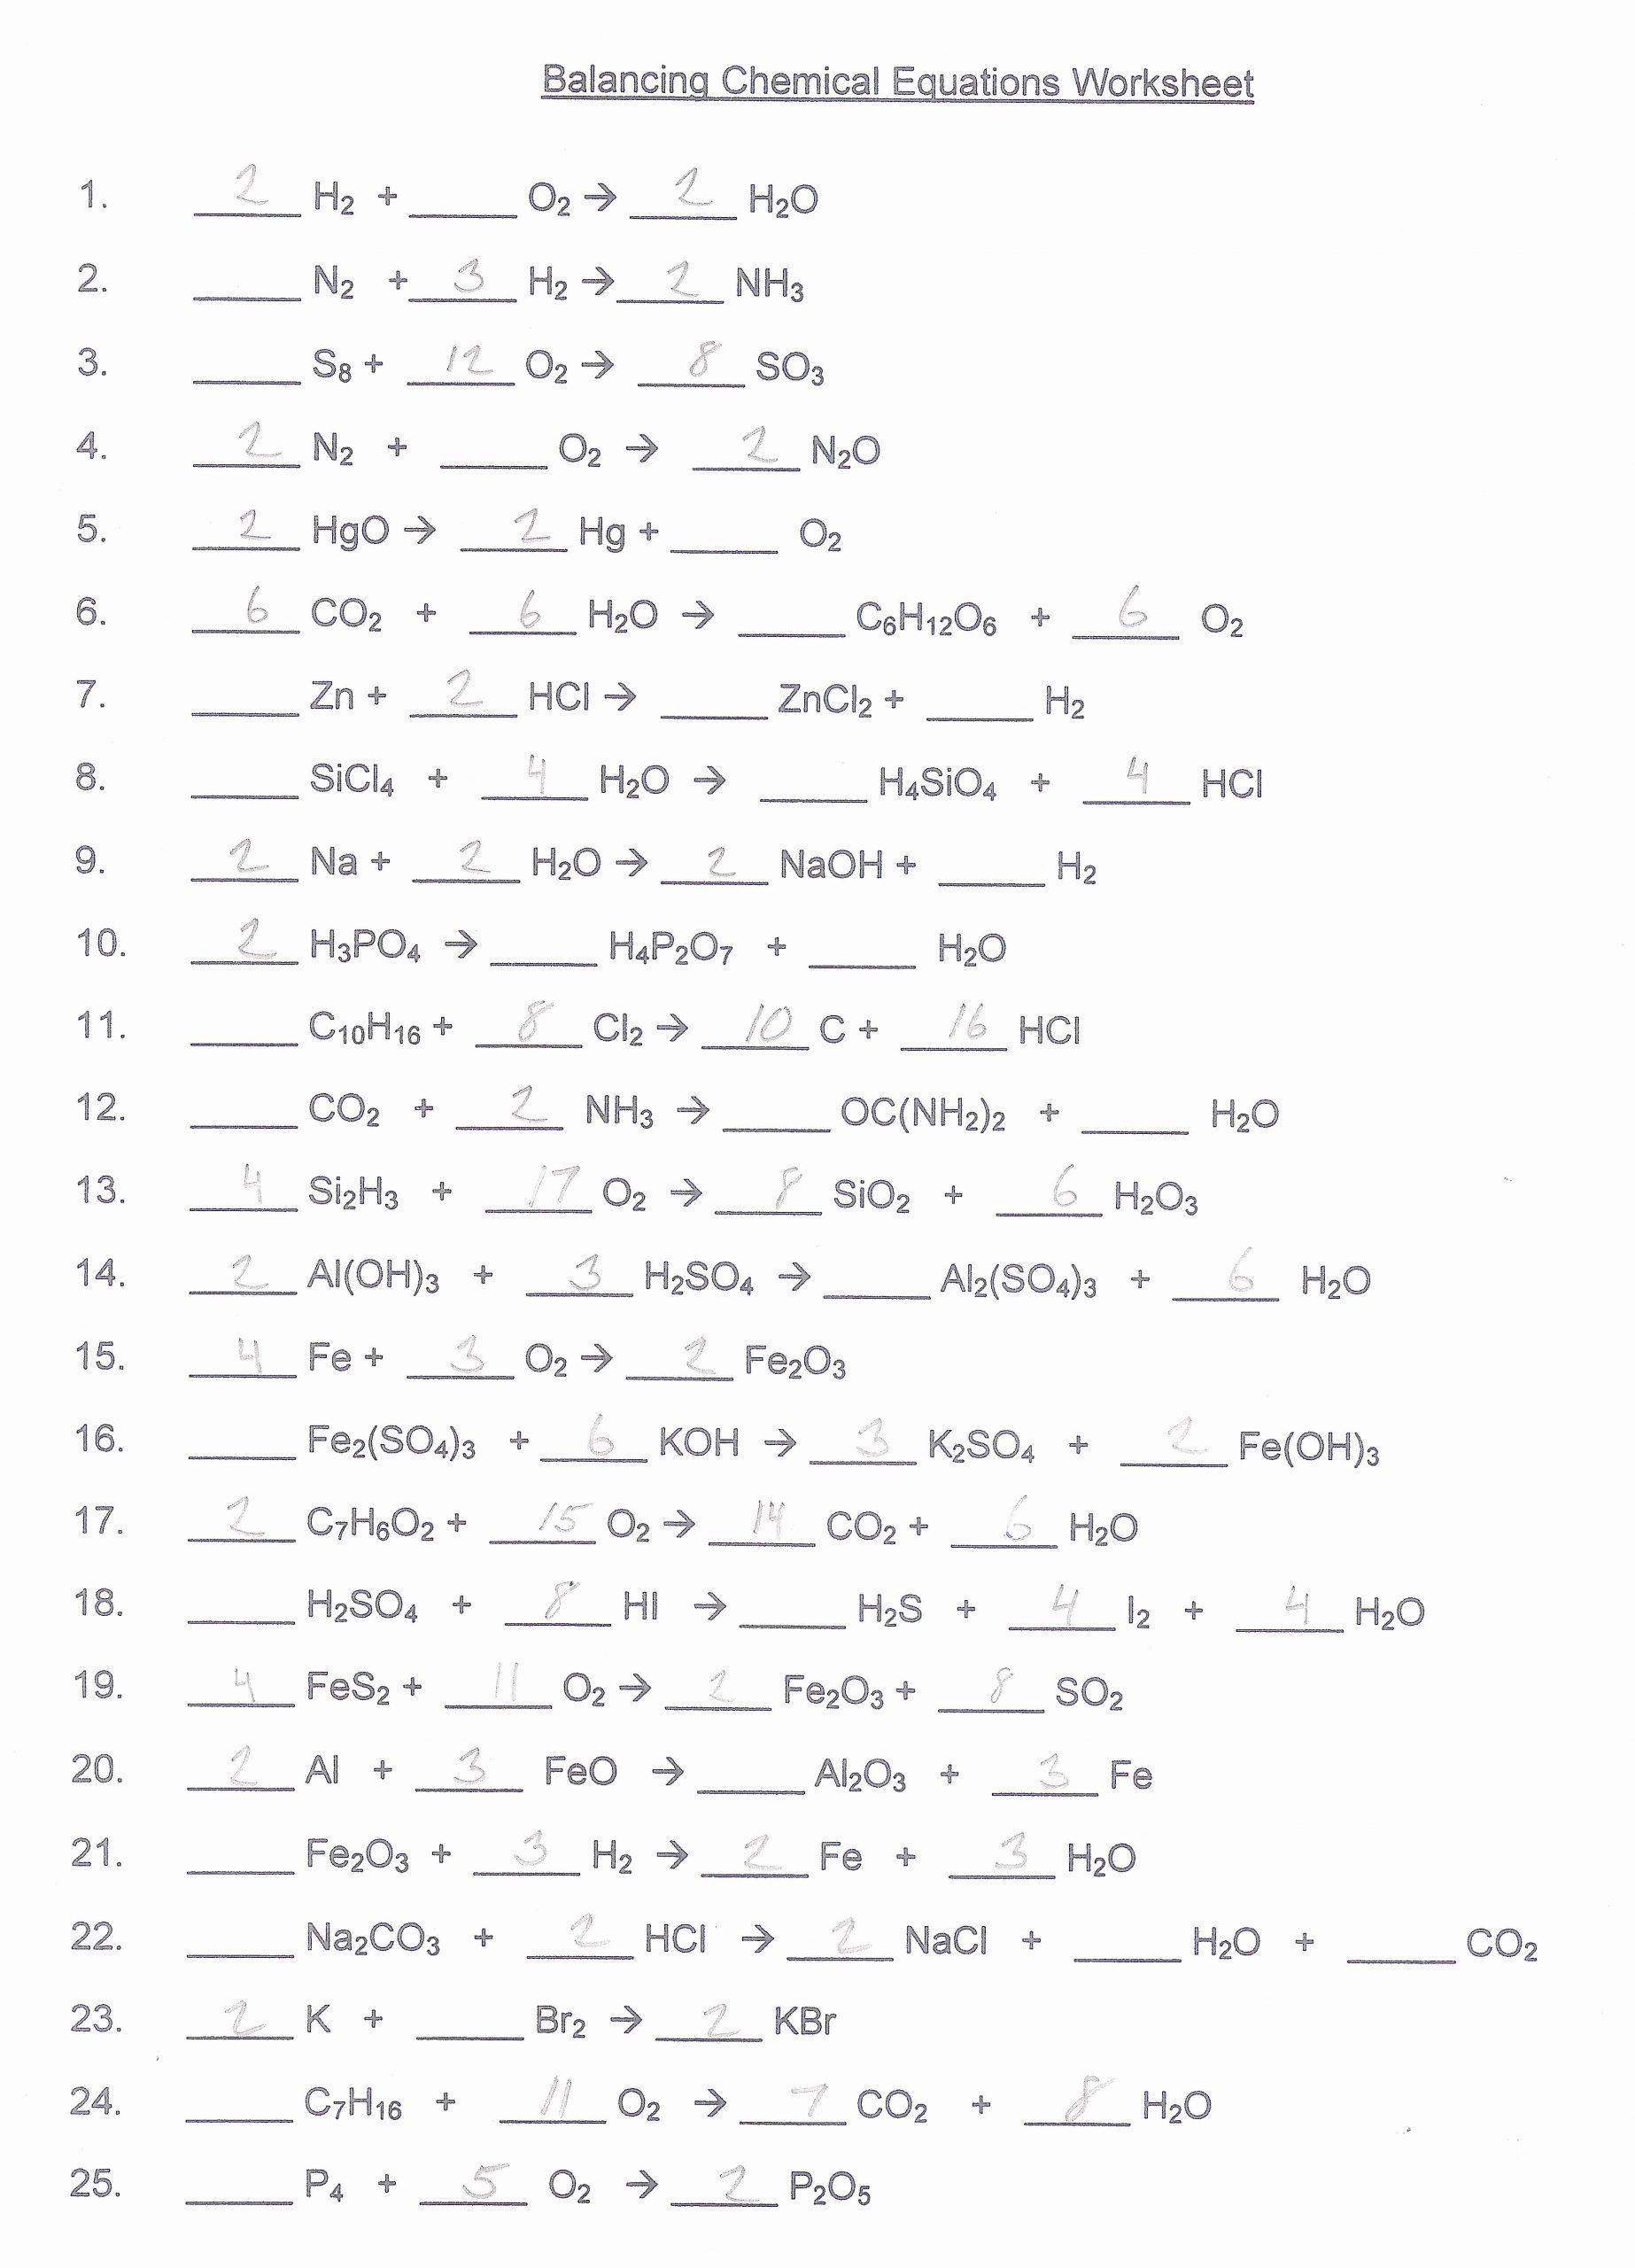 Balancing Equations Practice Worksheet Answers Kids General Chemistry Worksheets And Answers Chemical Equation Chemistry Worksheets Balancing Equations